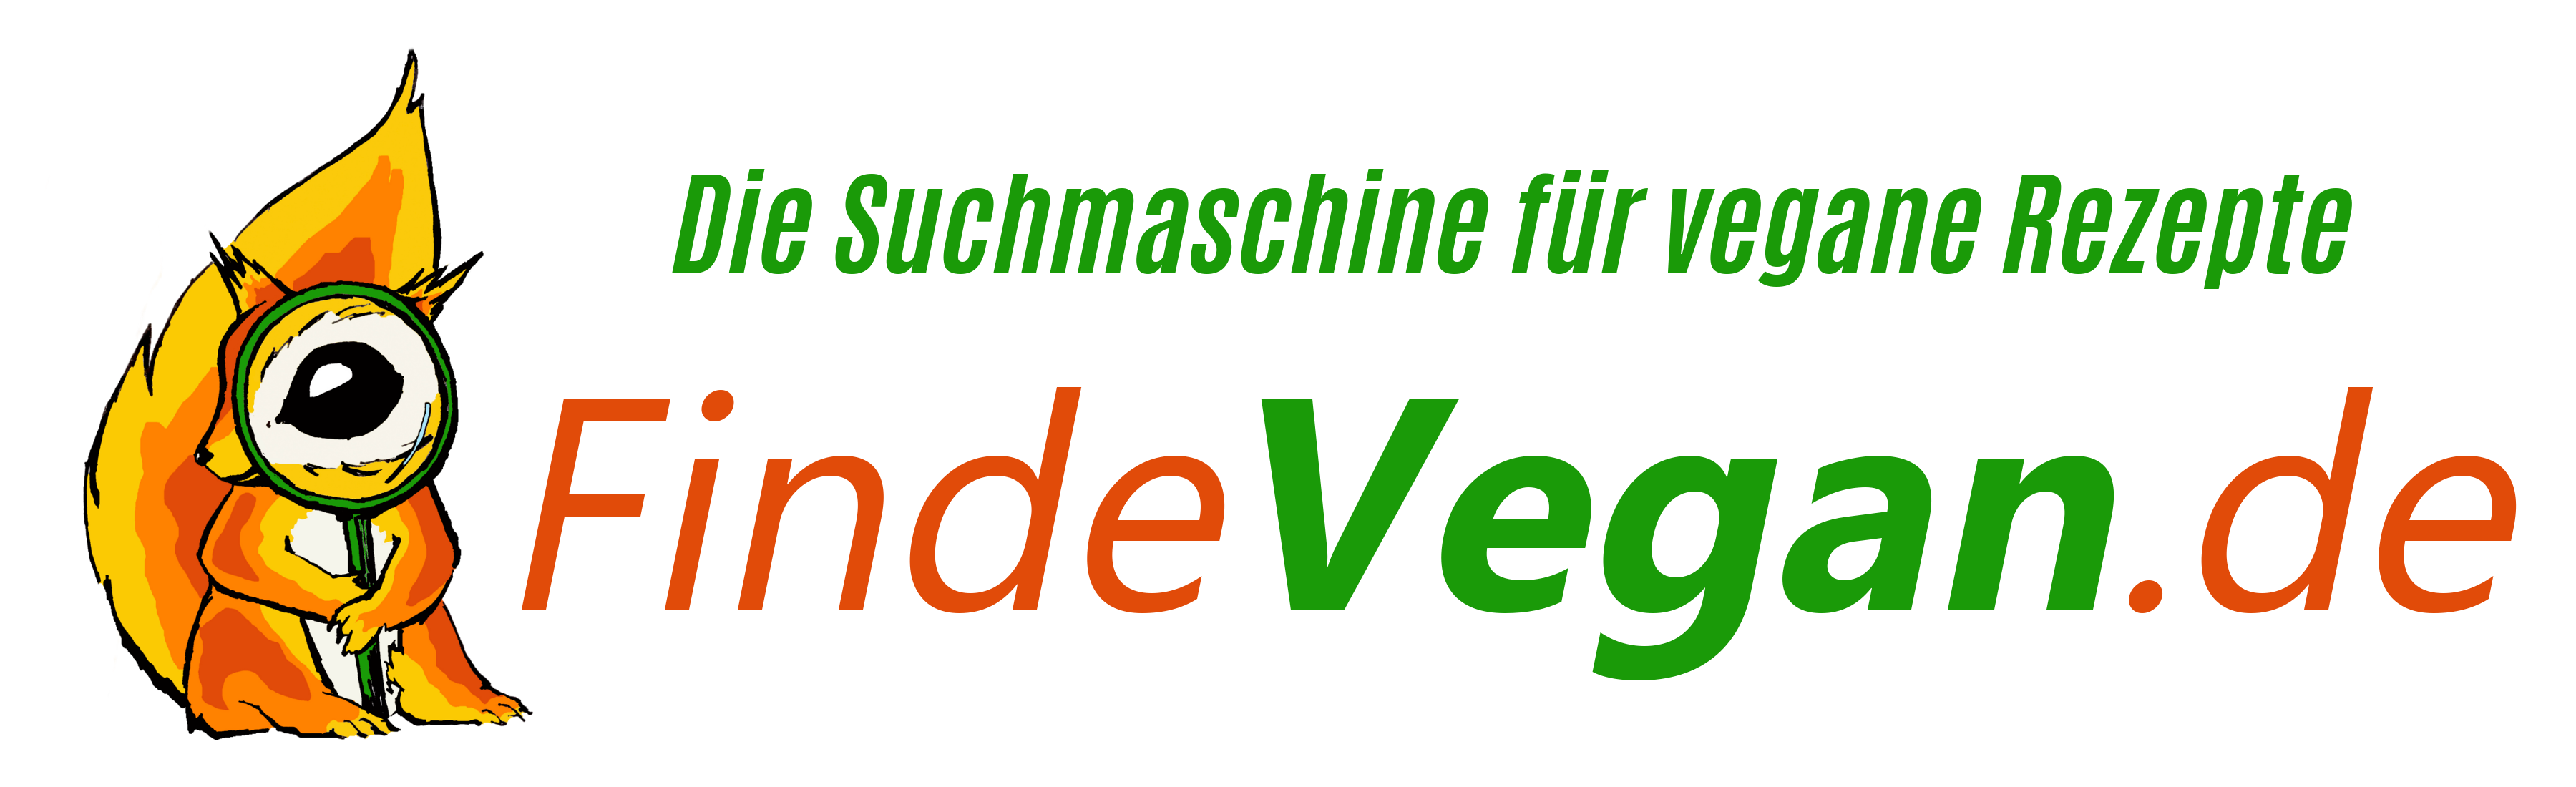 findevegan.de